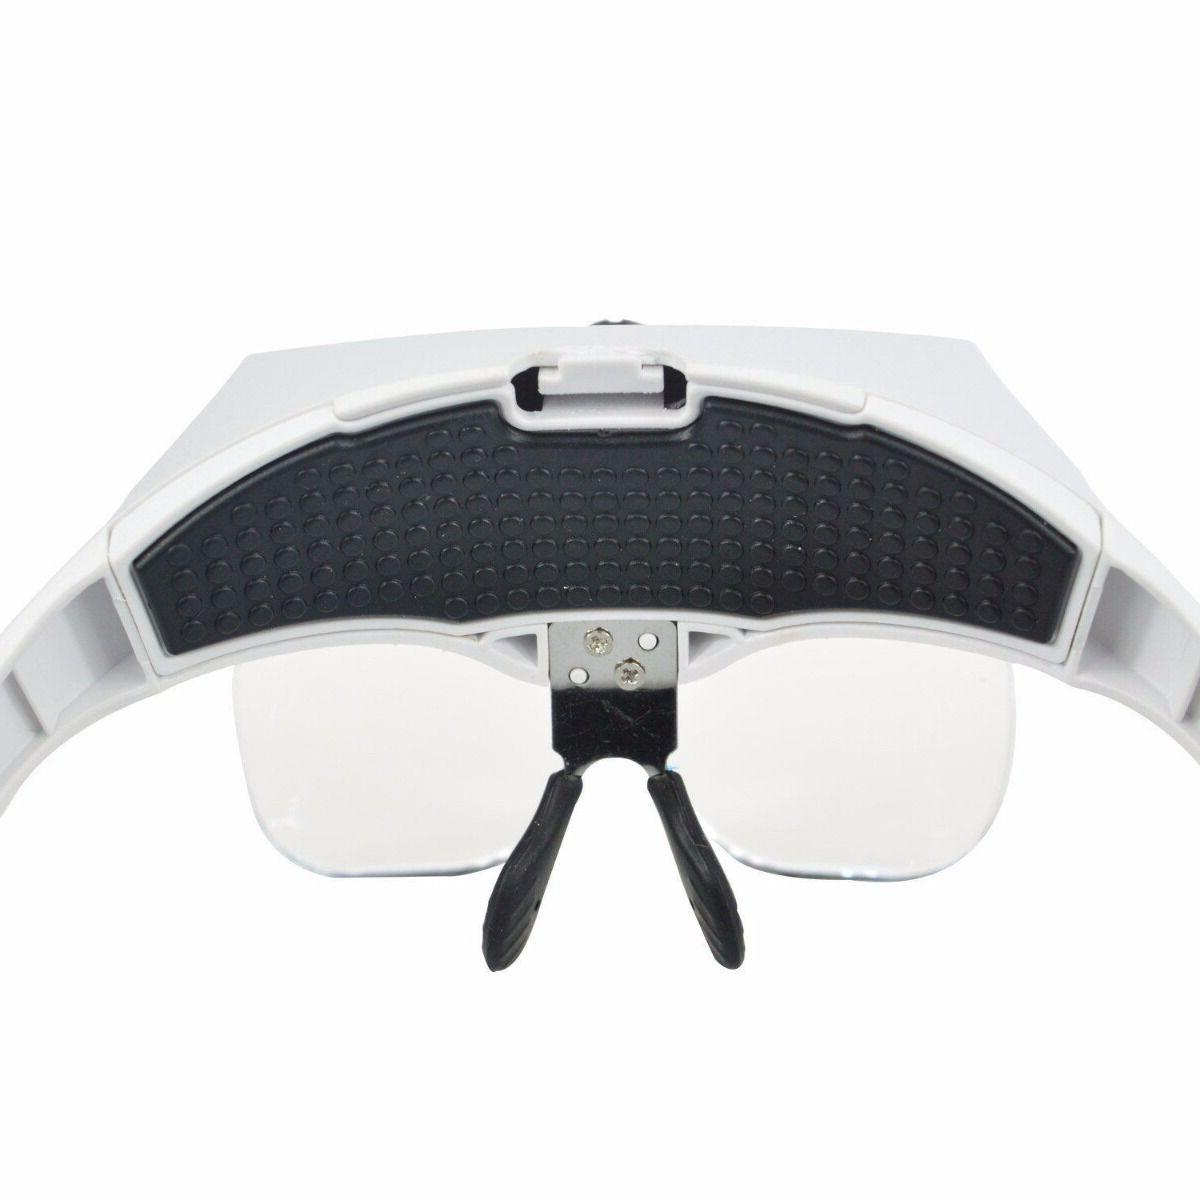 Magnifying Glass Light Visor Loupe Headband